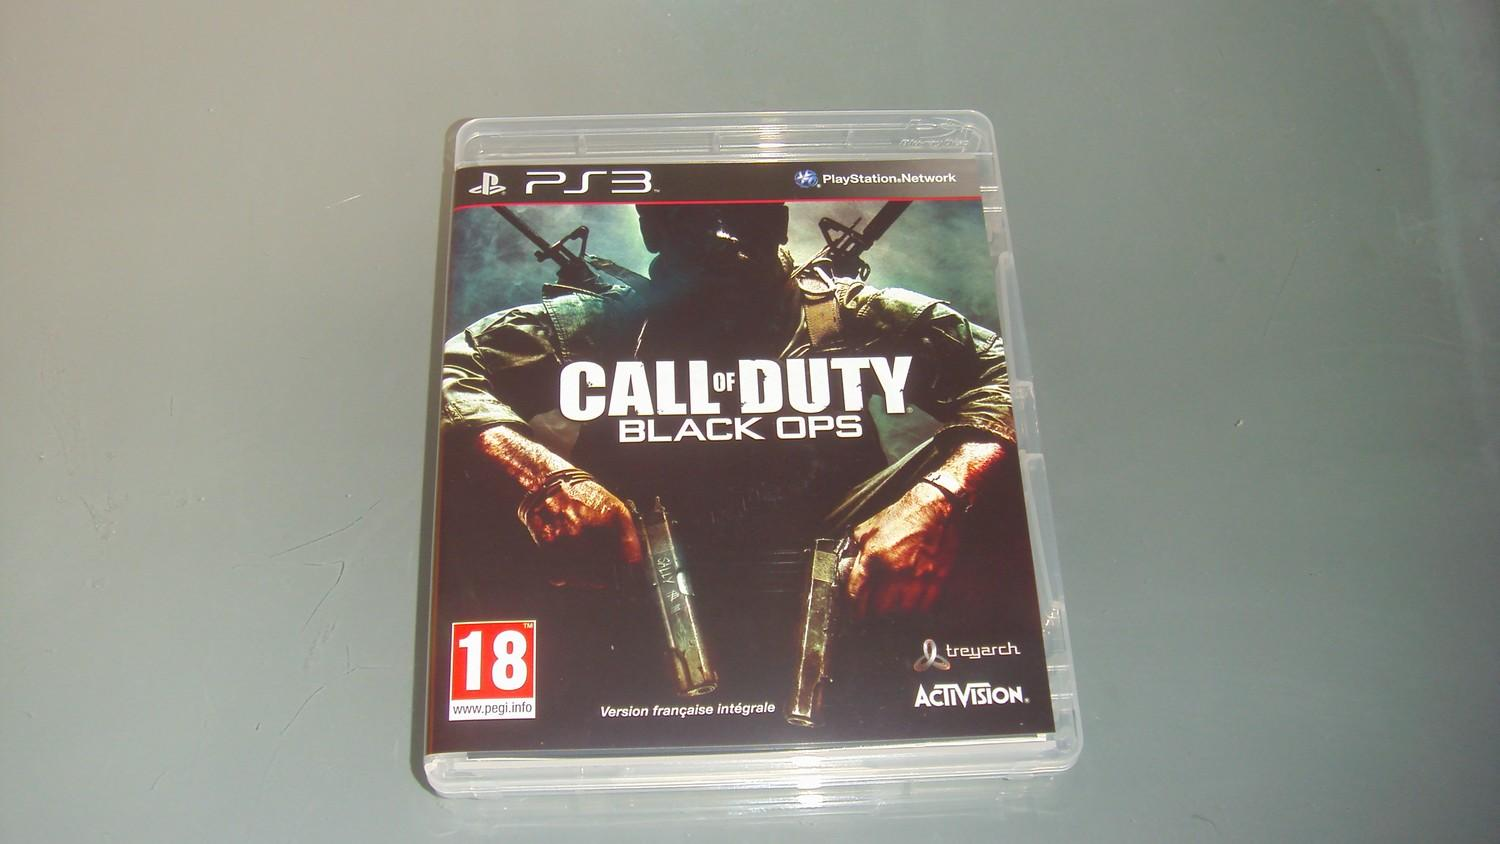 black ops weebeetroc [arrivage] Call Of Duty Black Ops sur PlayStation 3